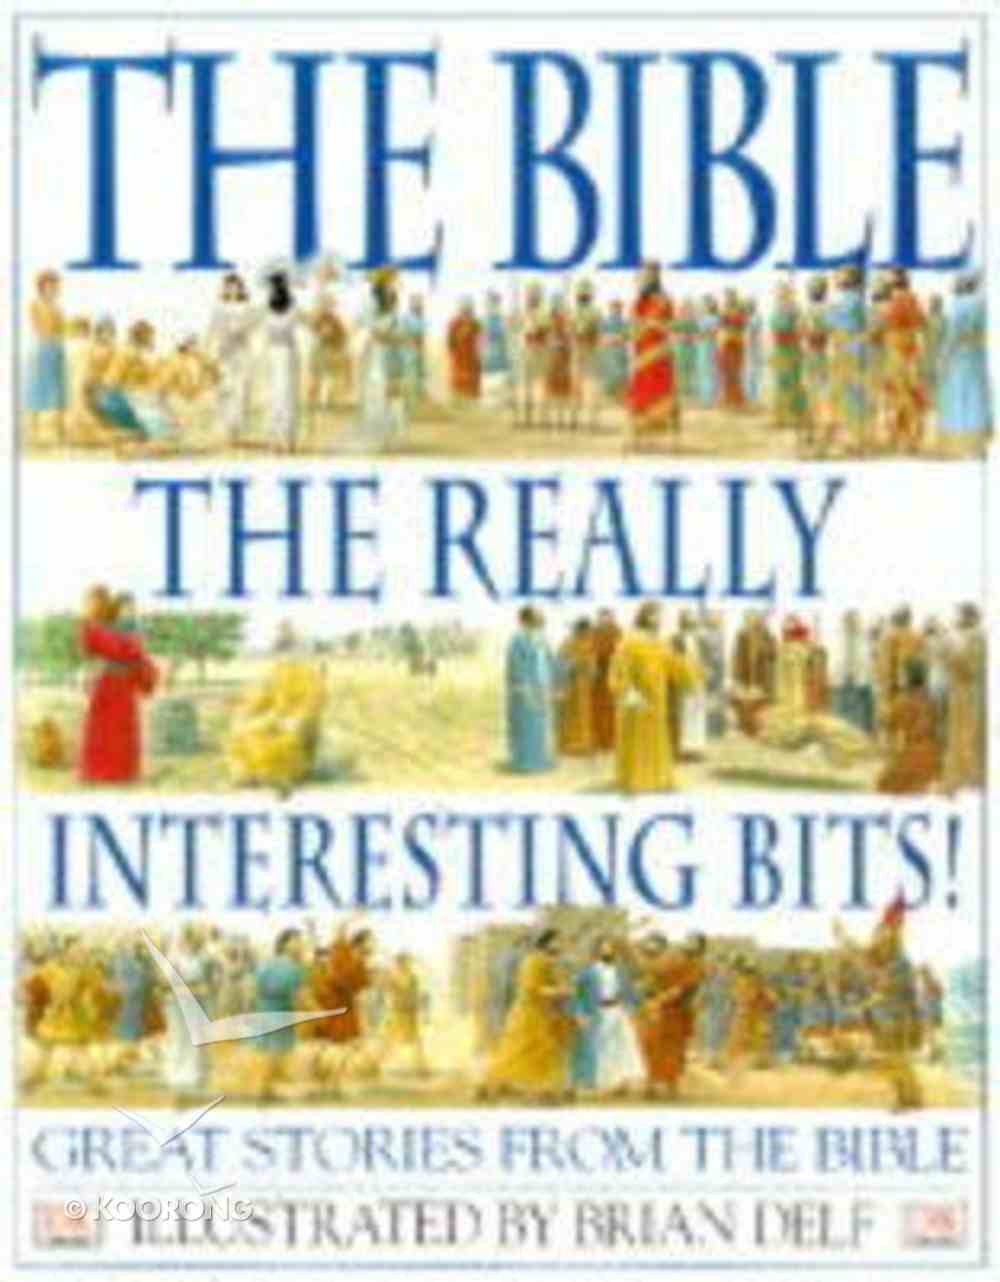 The Bible: The Really Interesting Bits! Hardback